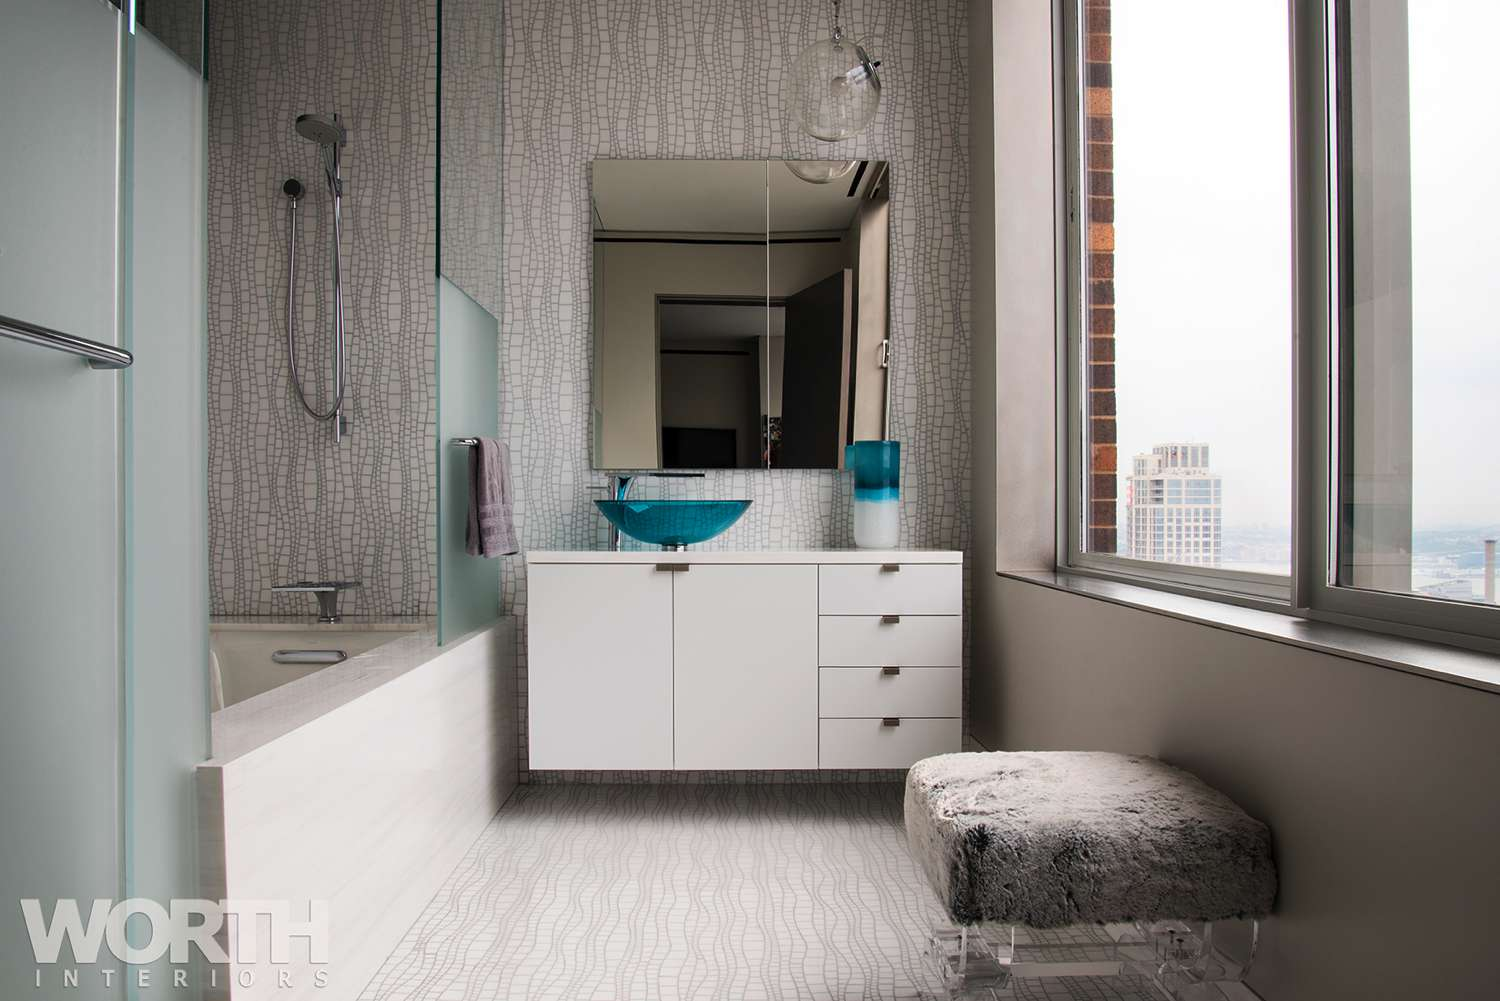 Manhattan Bathroom with turquoise details 11